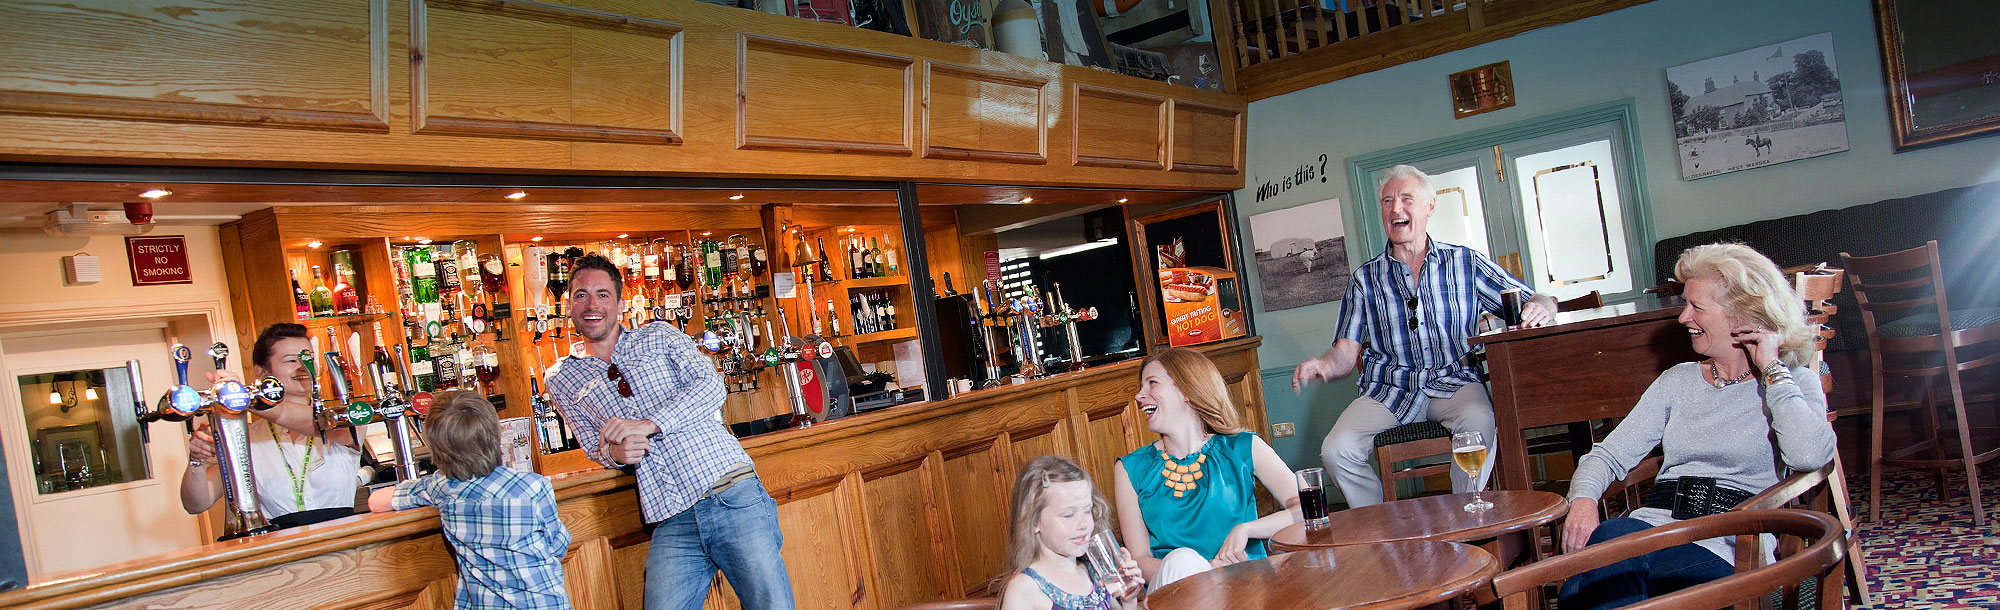 Holiday park entertainment - bar and restaurant